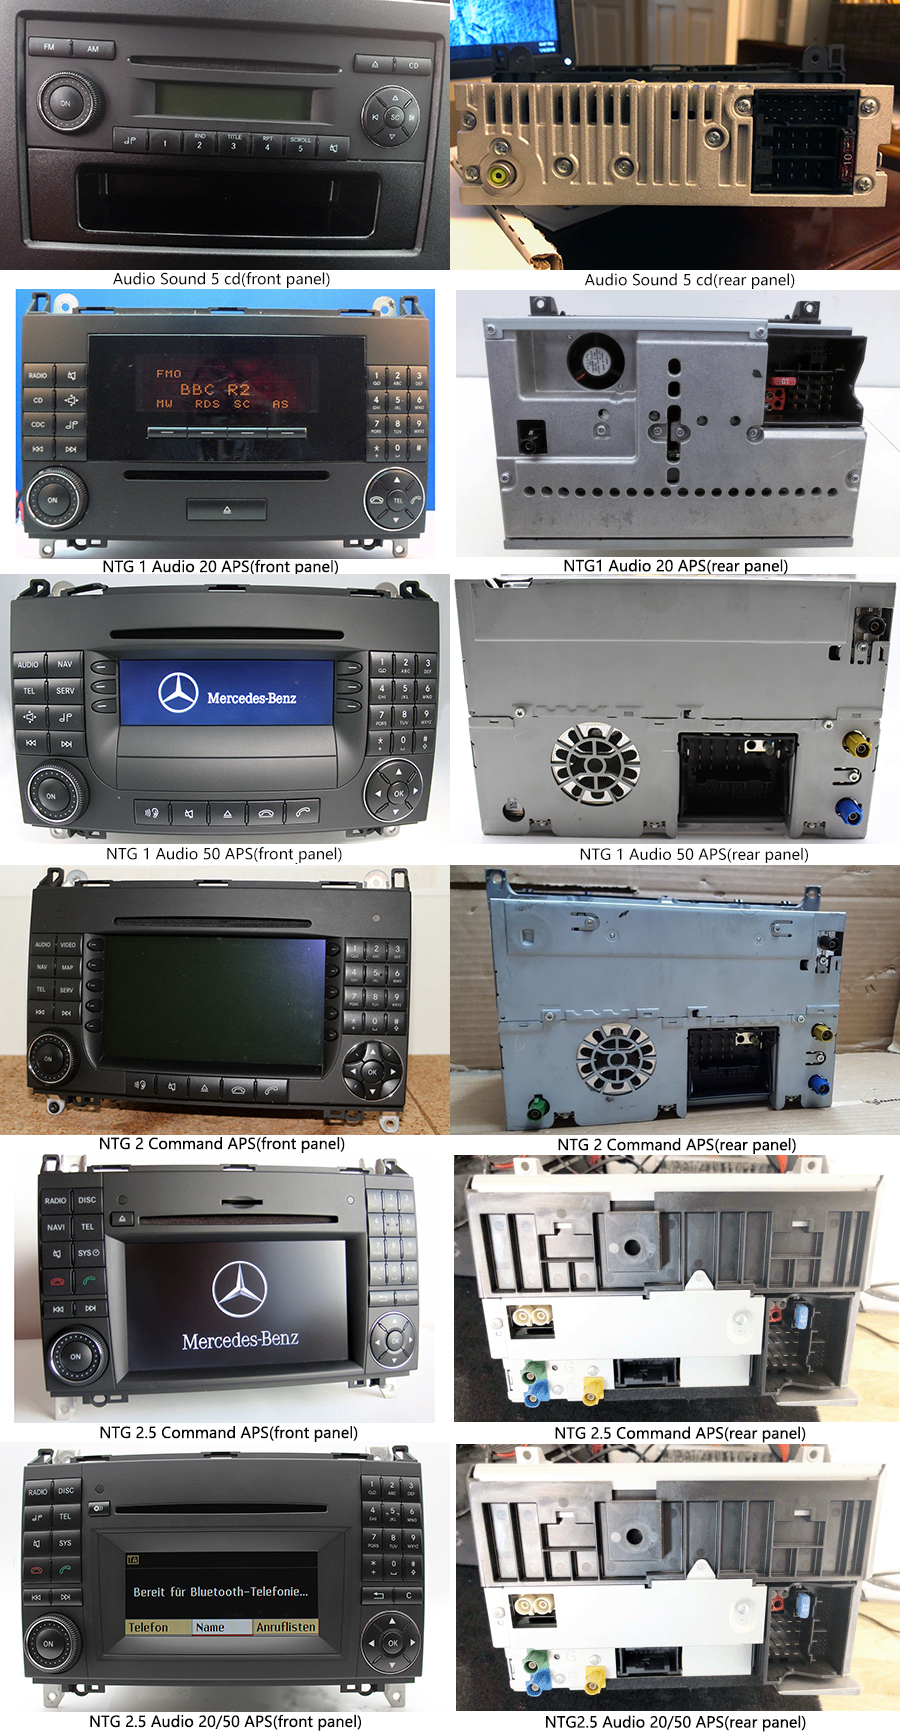 Mercedes-Benz A/B/Viano und Vito/Sprinter/Crafter radio upgrade